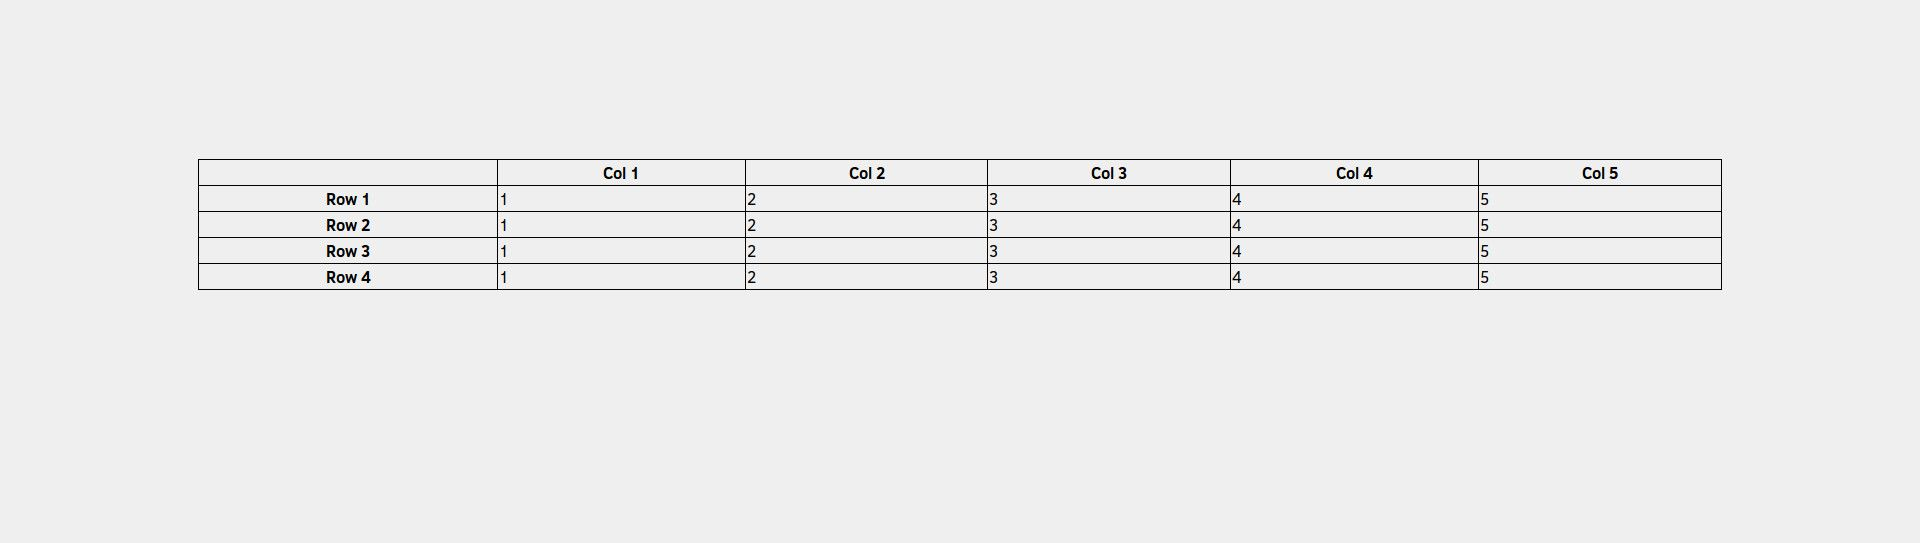 Using CSS to Add Internal Borders in an HTML Table